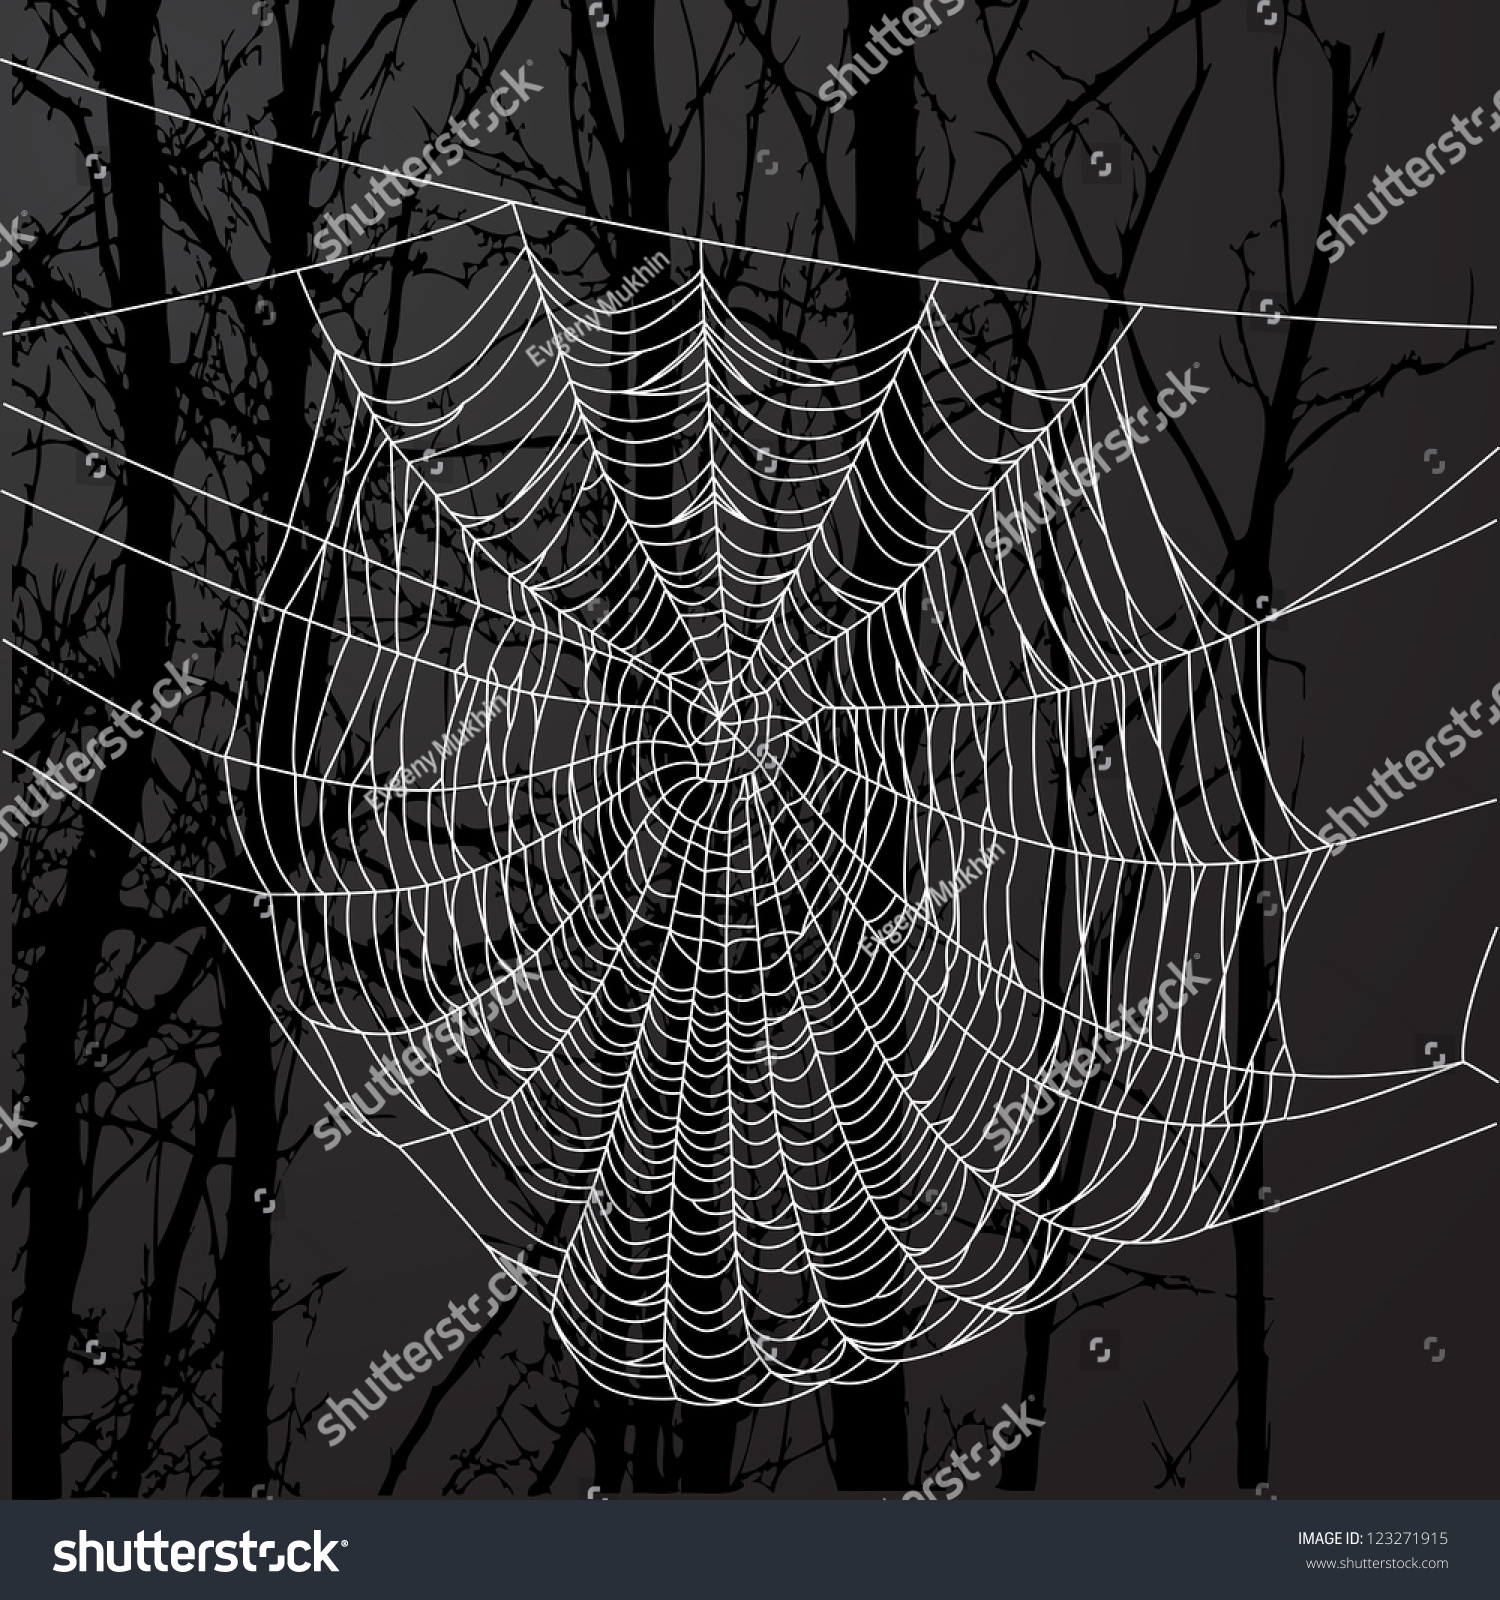 Realistic spider web drawings